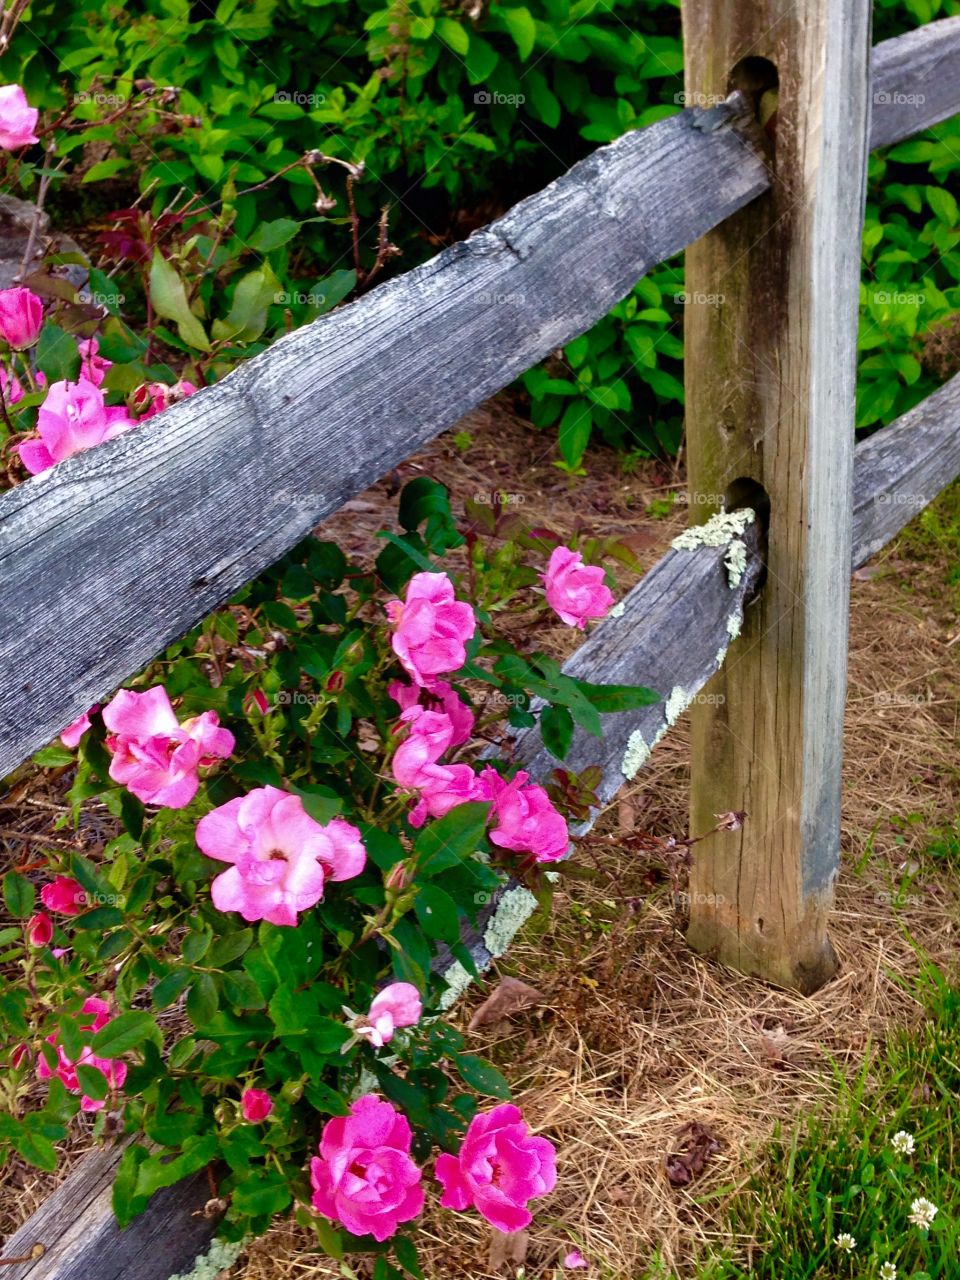 Rustic and Roses. Pink roses on a rustic fence